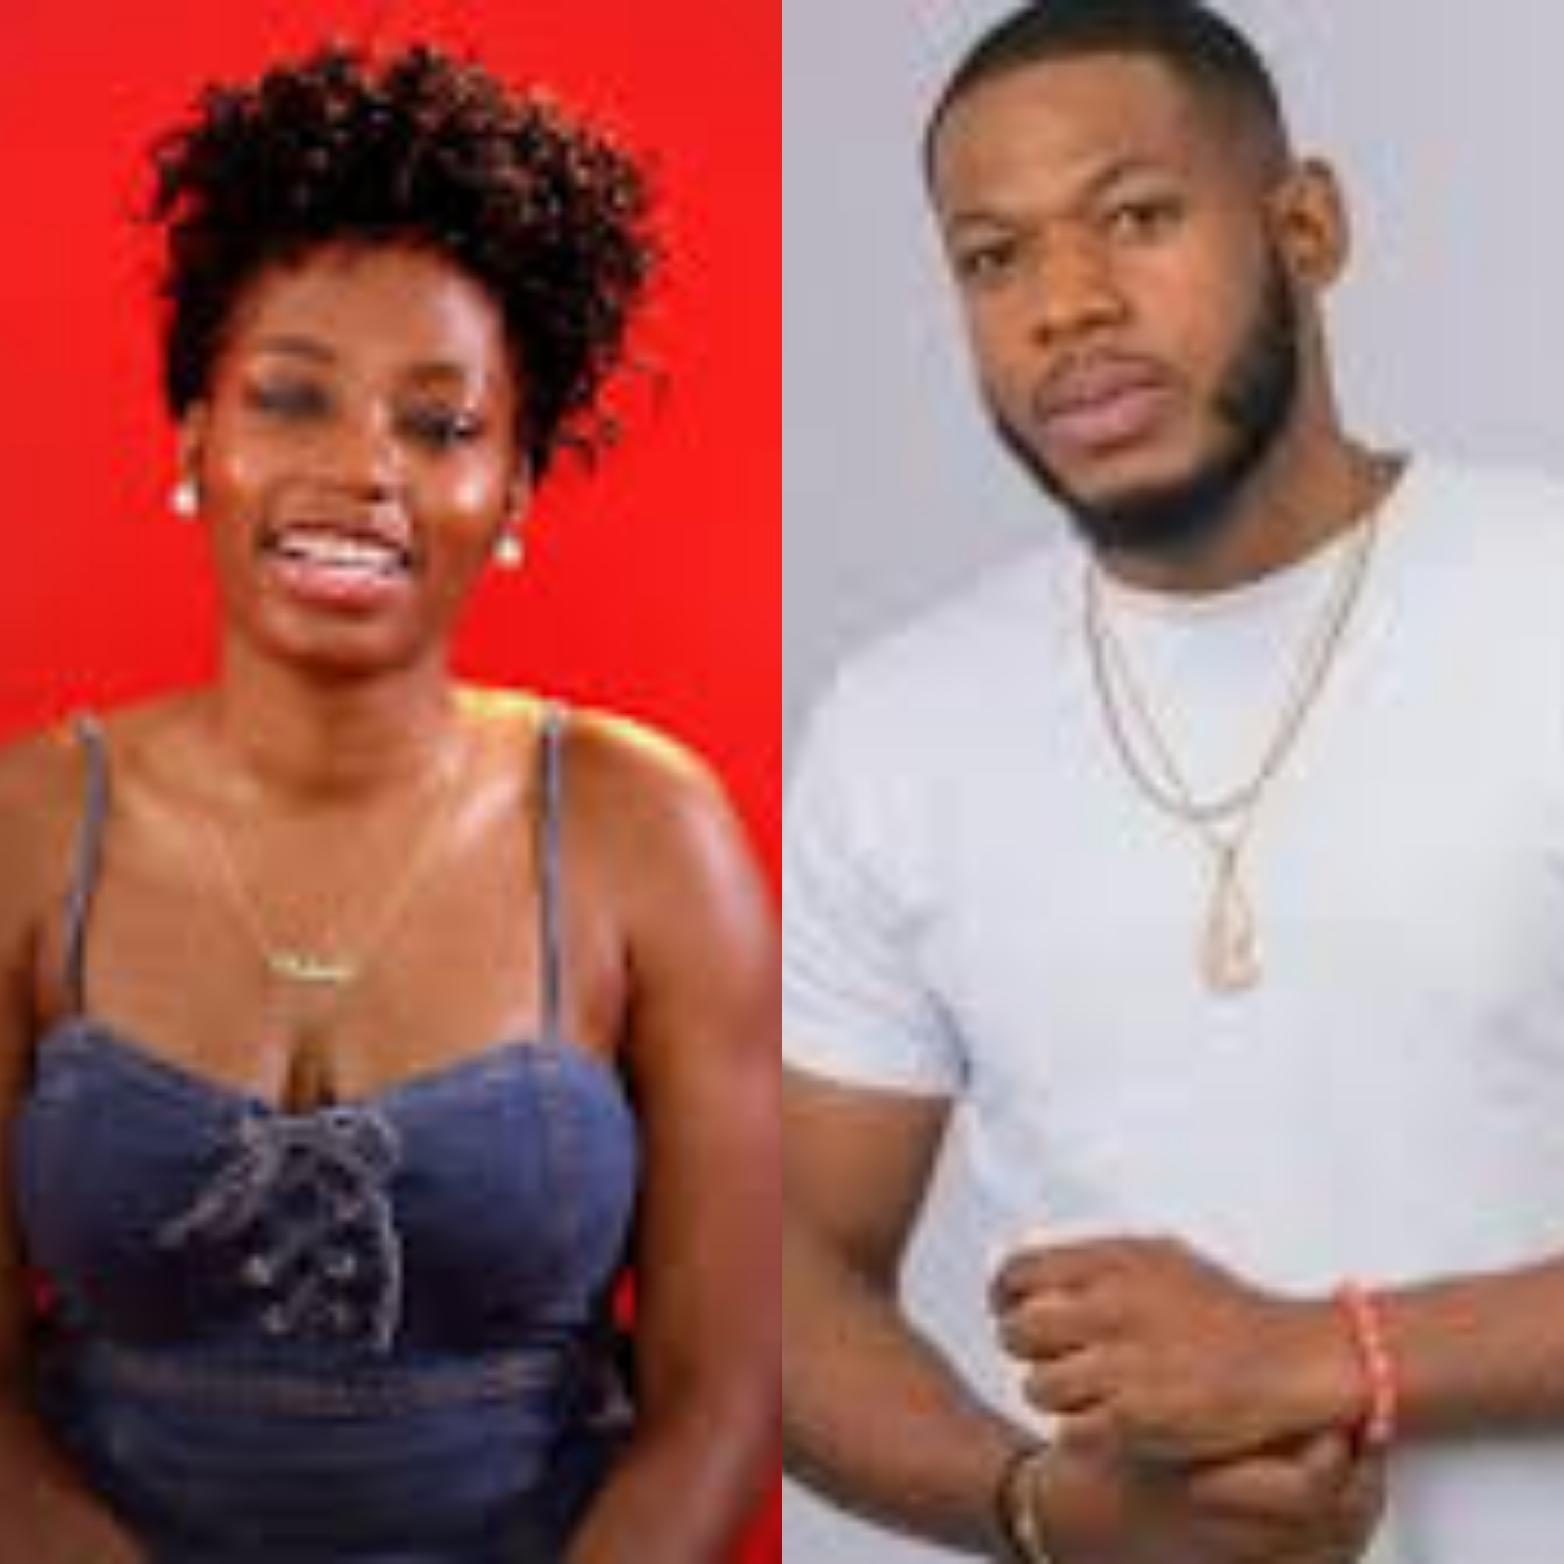 IMG 20190908 133512 - BBNaija2019: Frodd Calls Khafi Two-Faced Person For Winning Car